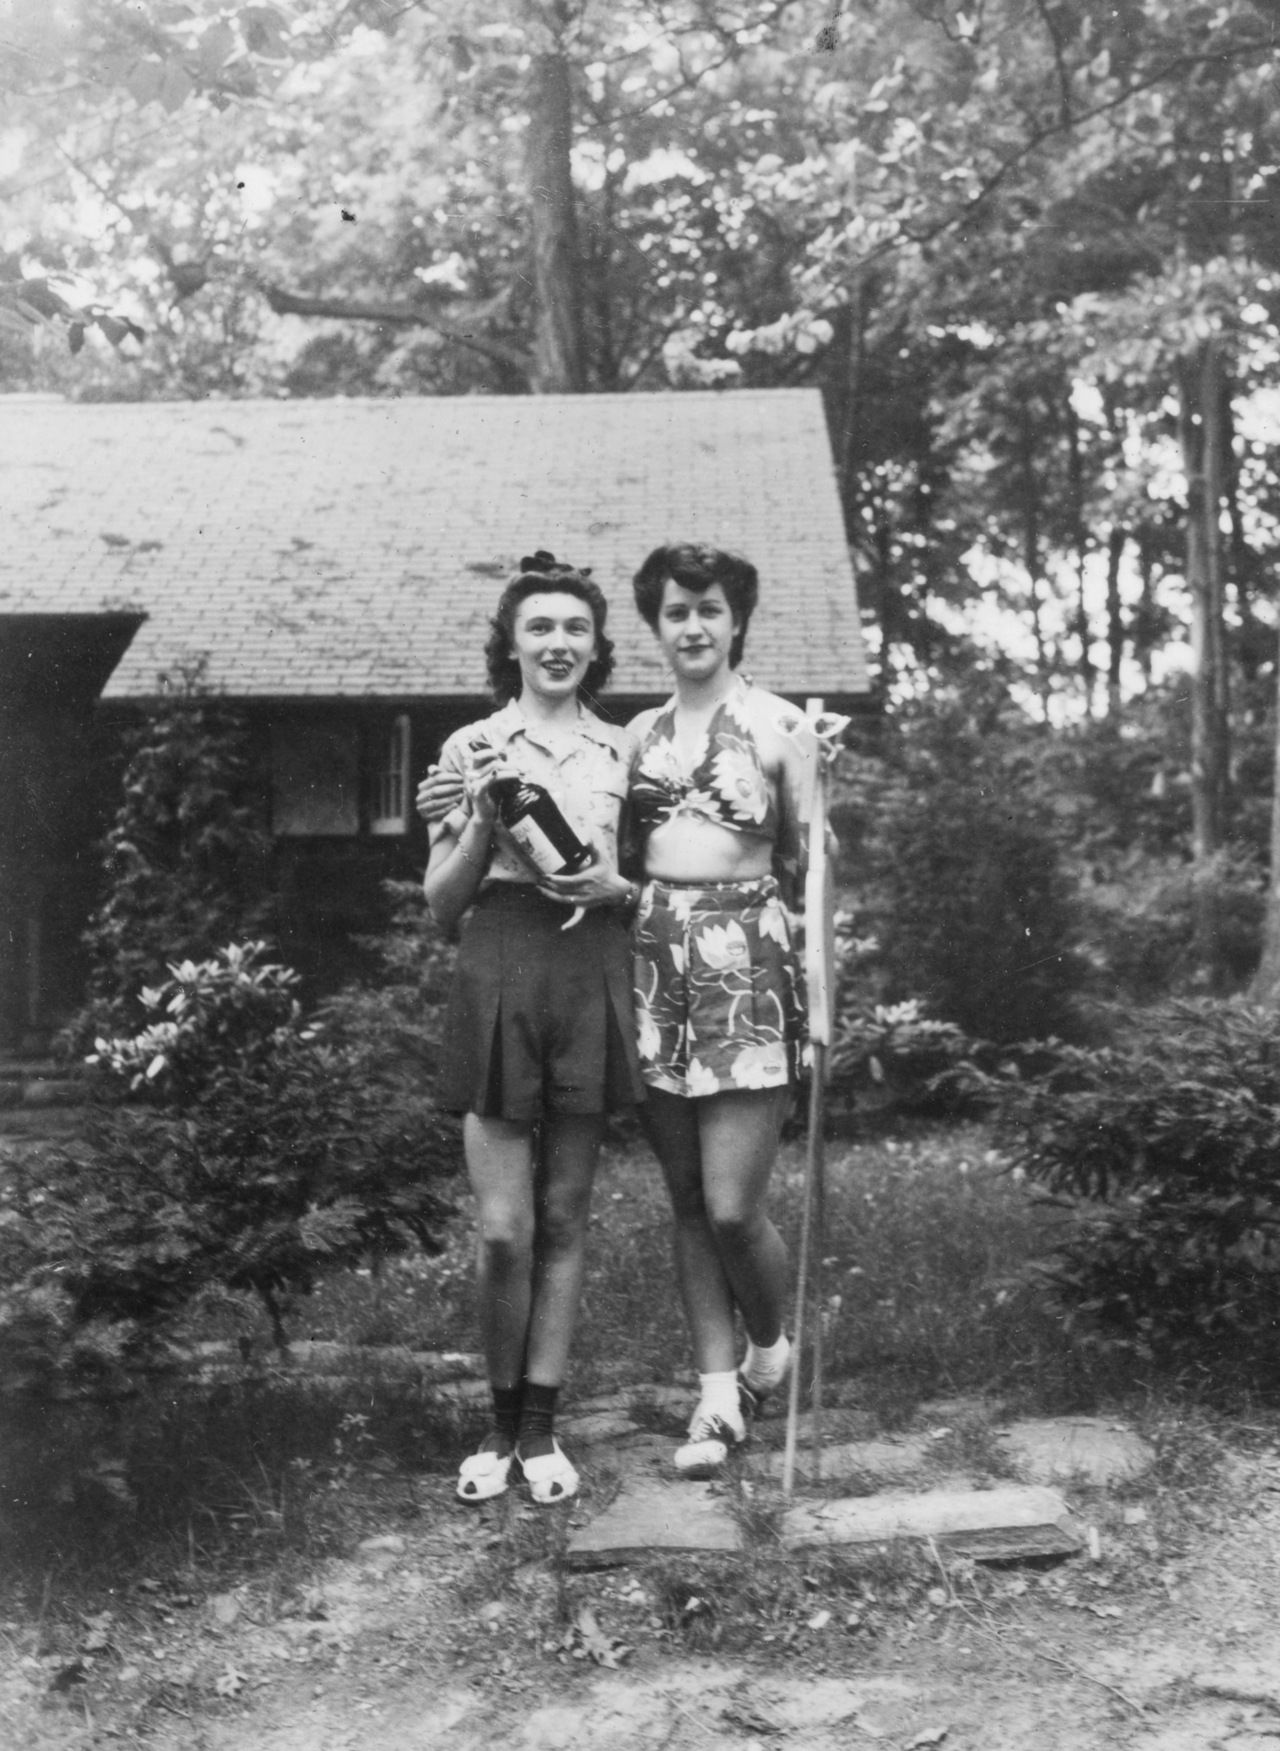 My grandma at age 21 (left) on a retreat holding a bottle of booze, c.1942